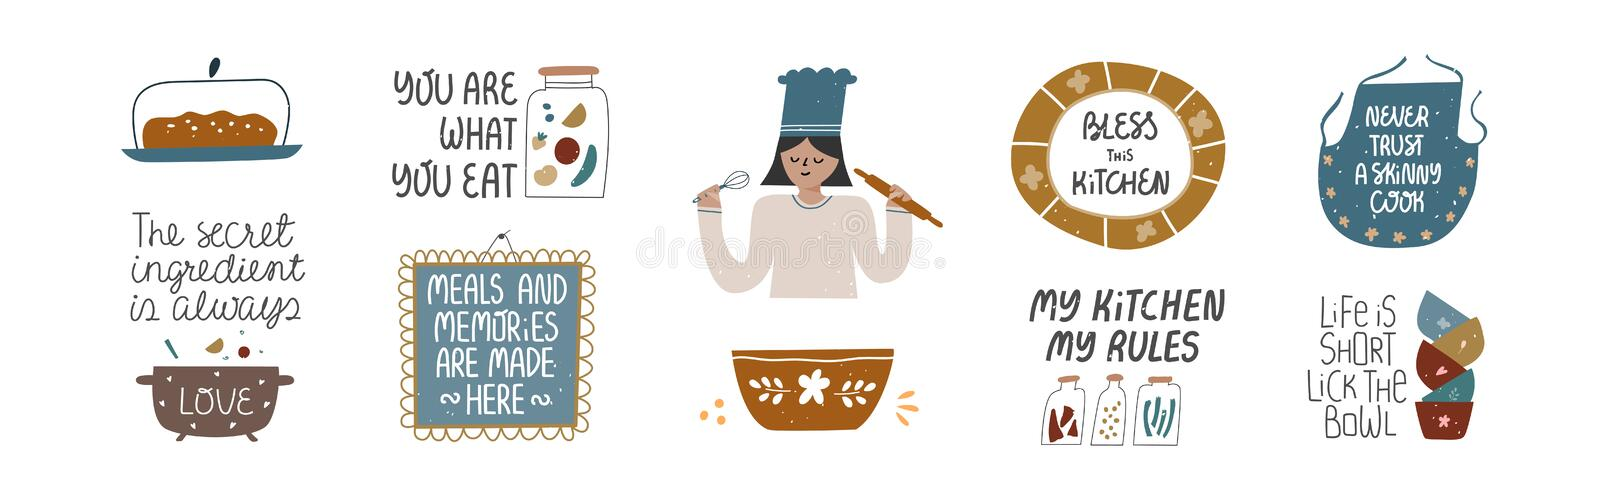 Funny Cooking Quotes Stock Illustrations 114 Funny Cooking Quotes Stock Illustrations Vectors Clipart Dreamstime